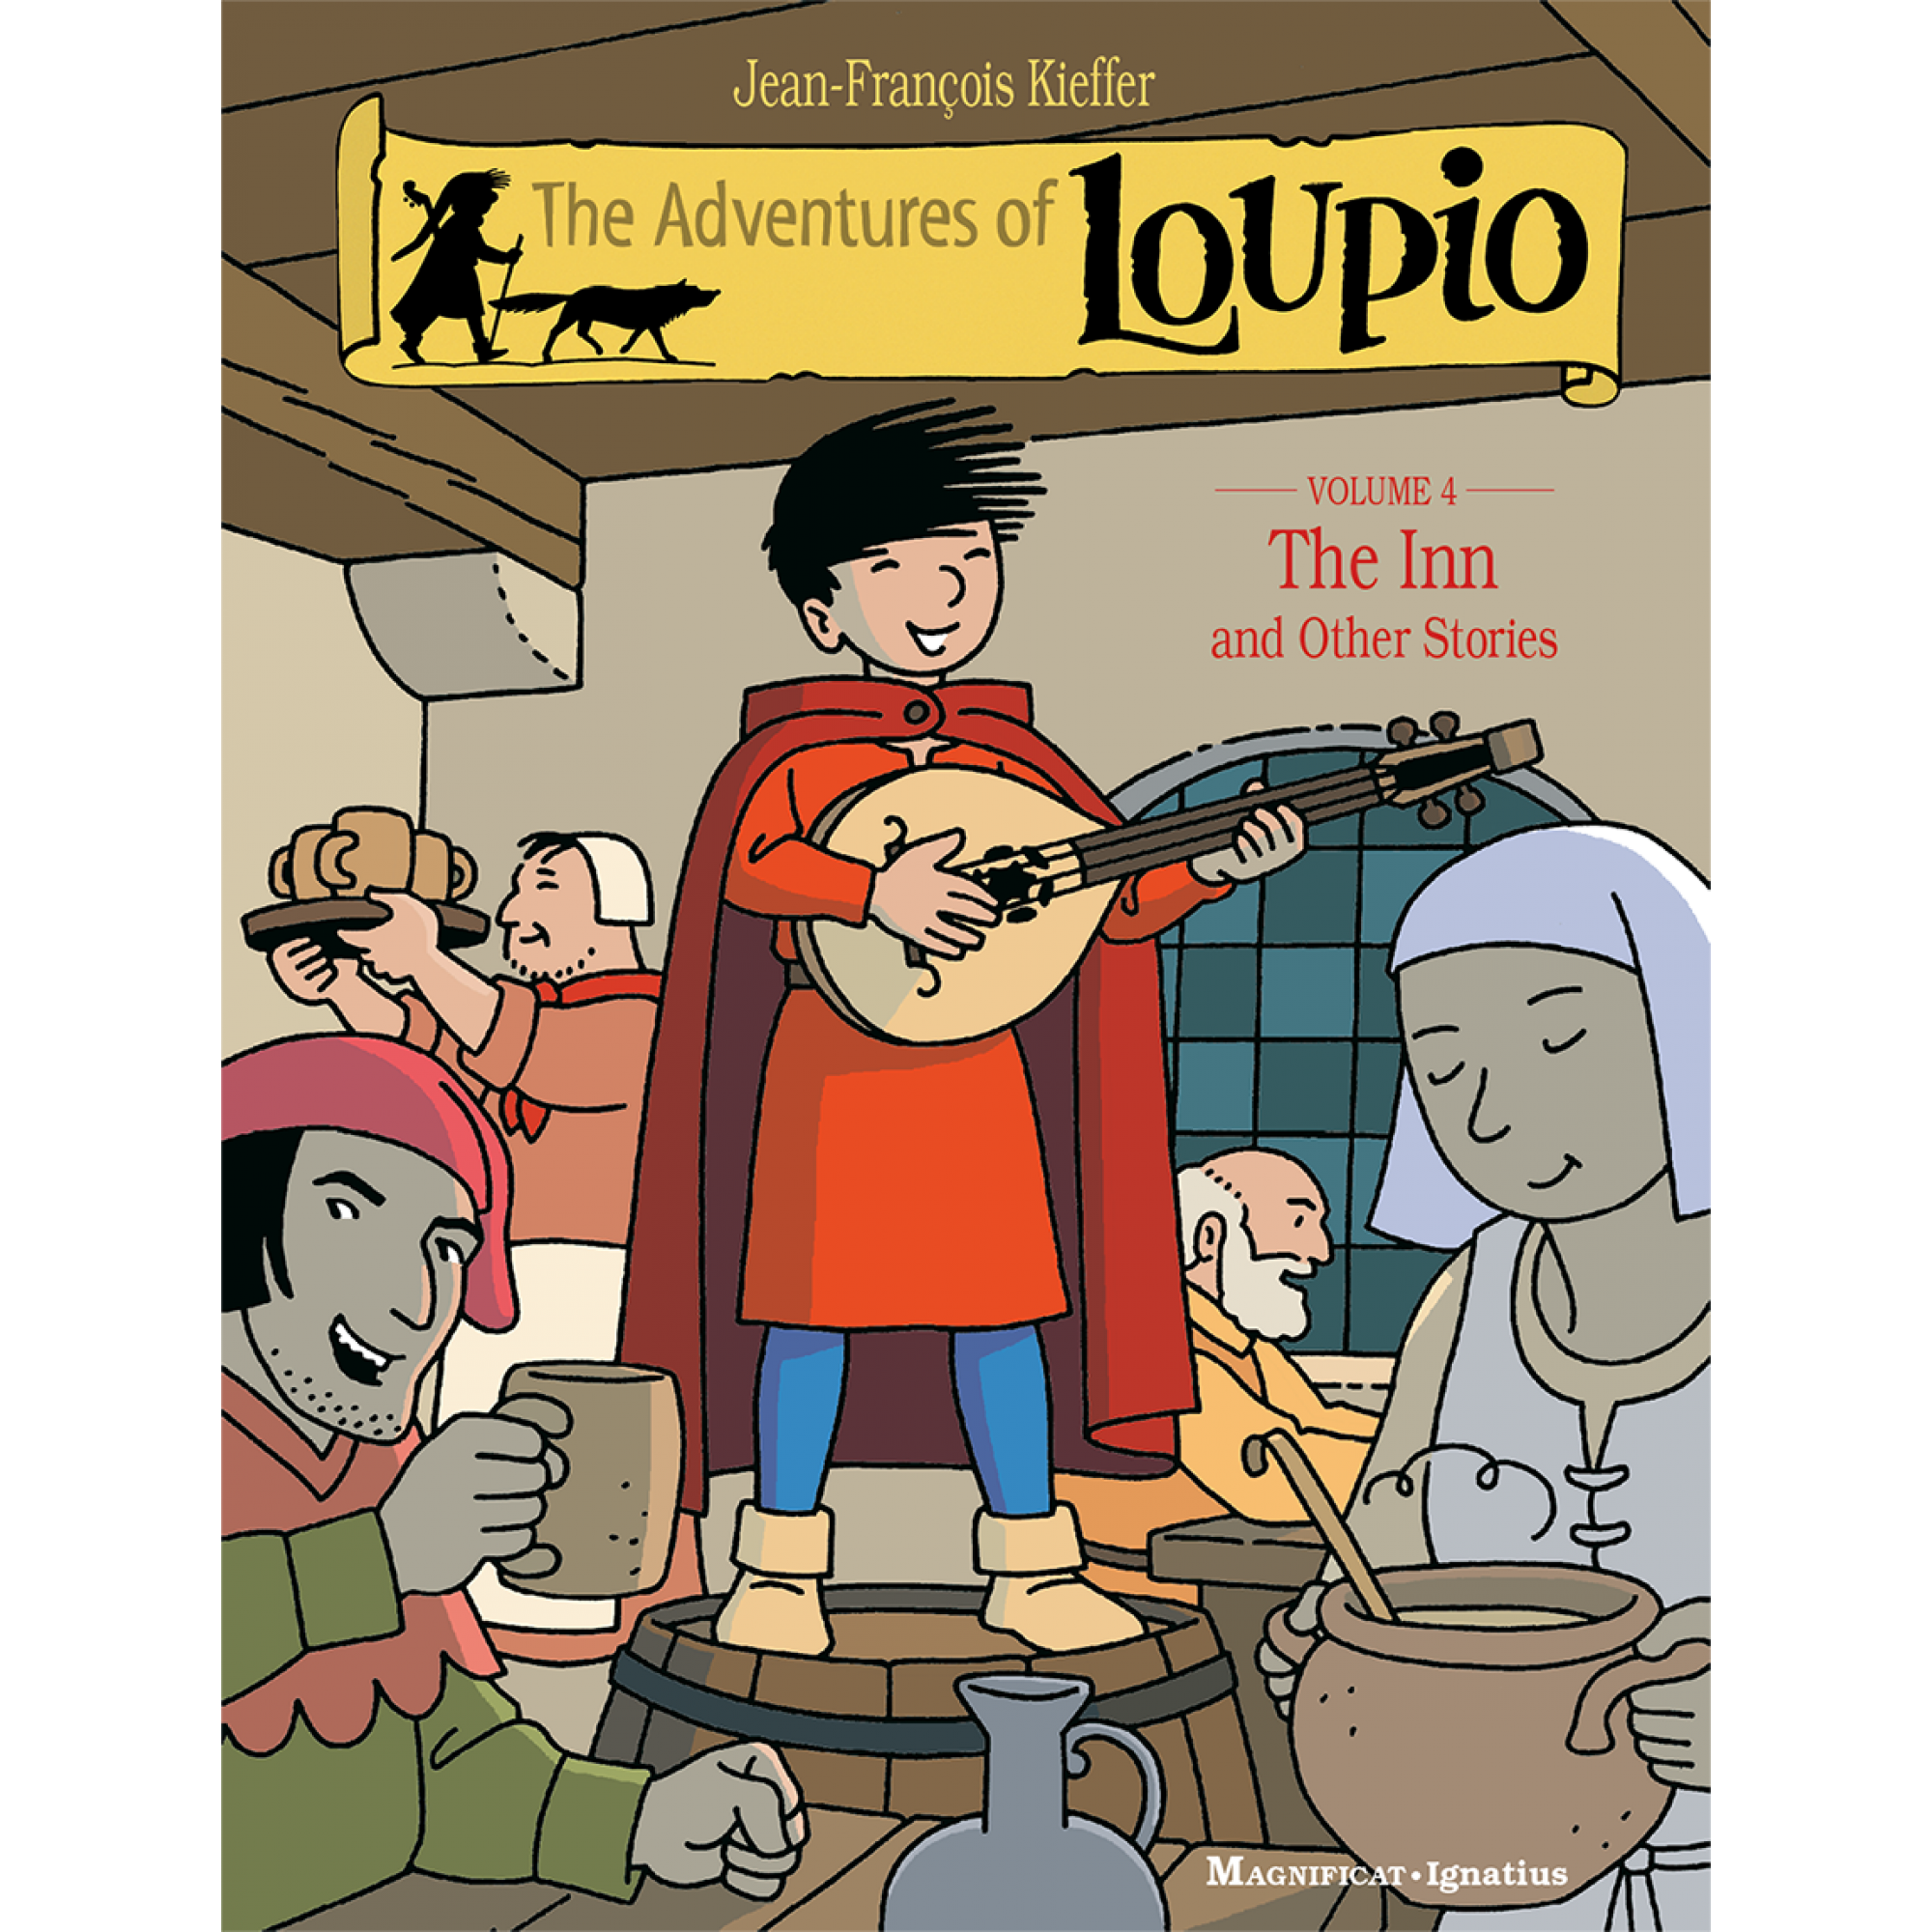 Adventure book from up clipart vector library library Magnificat The Adventure of Loupio T4 vector library library